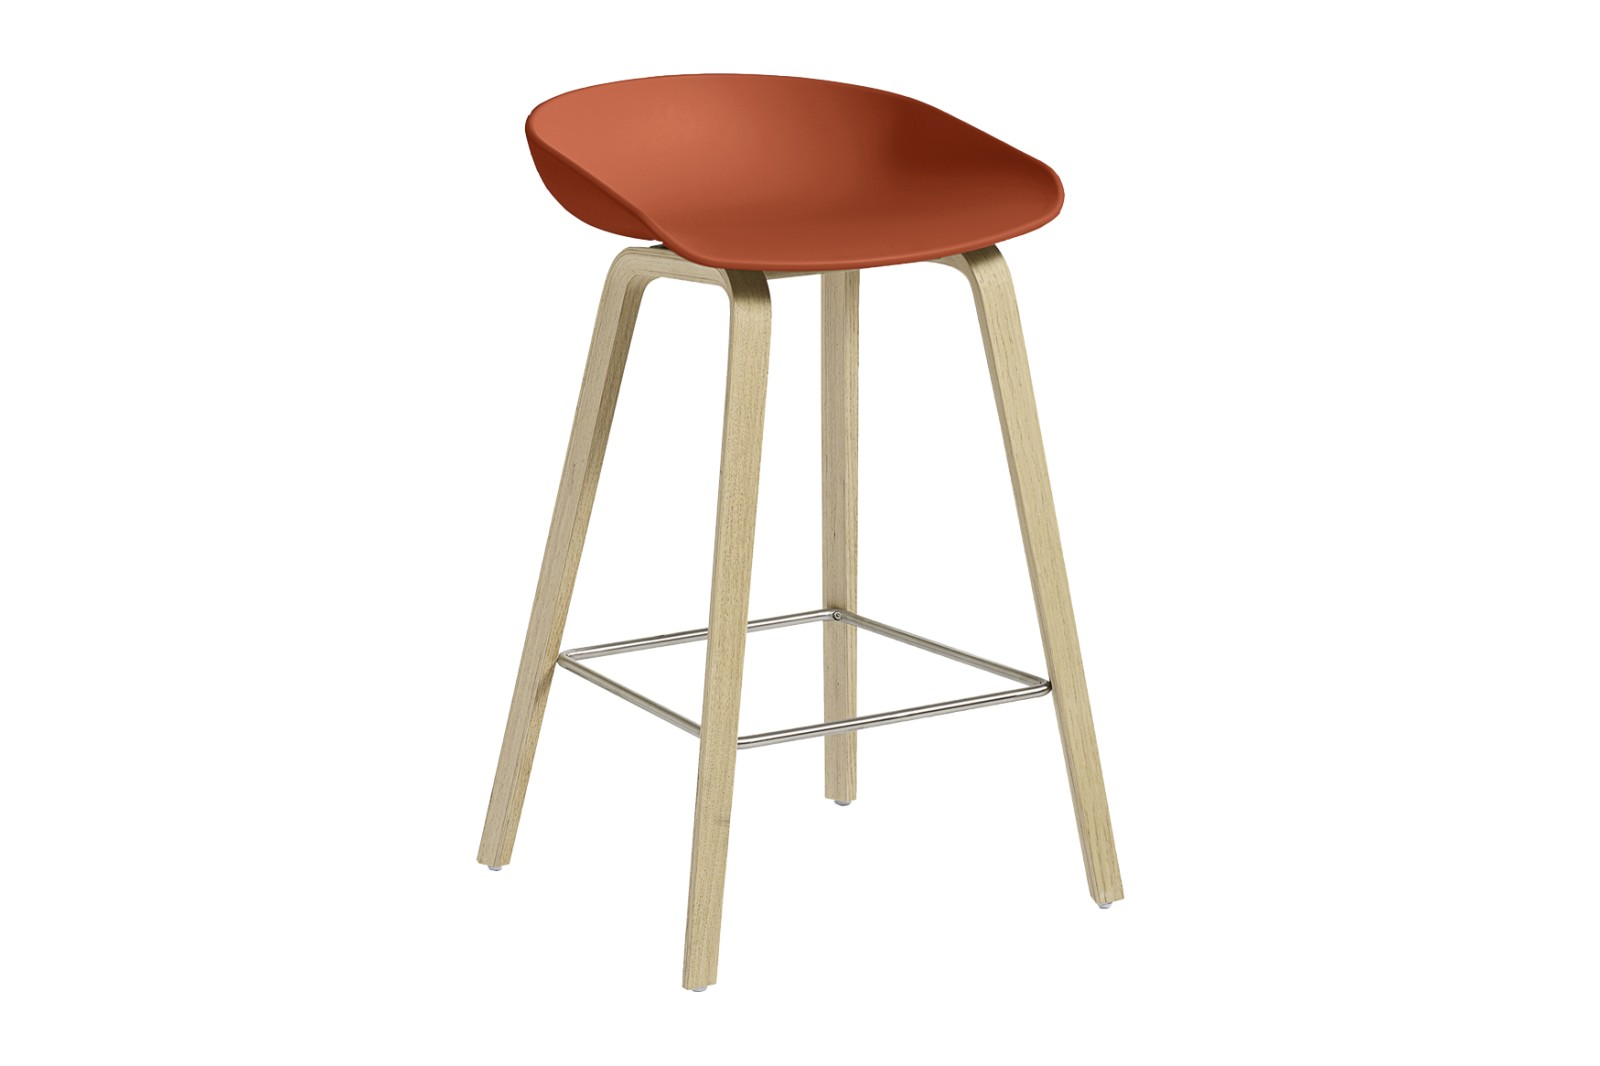 About A Stool AAS32 Soap Treated Oak Base, Orange Seat, Low, Stainless Steel